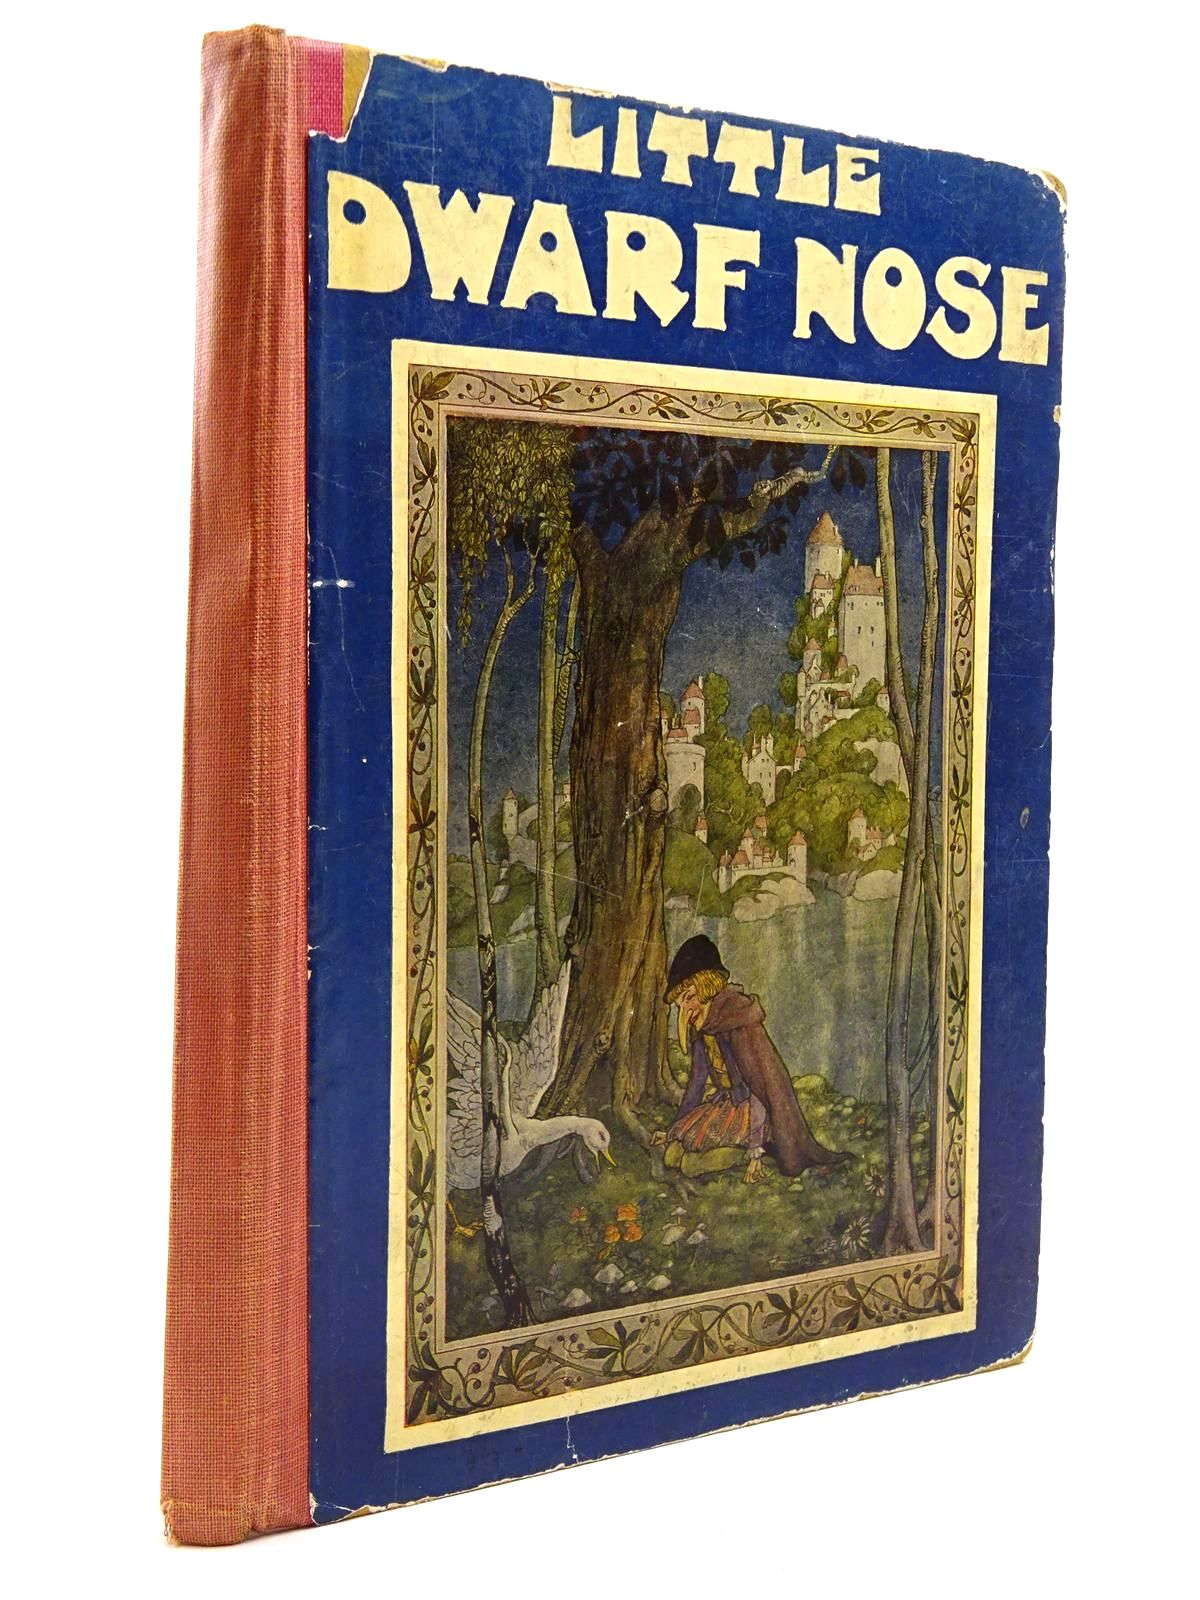 Photo of LITTLE DWARF NOSE written by Browne, E. Gordon illustrated by Anderson, Florence Mary published by J. Coker & Co. Ltd. (STOCK CODE: 2130779)  for sale by Stella & Rose's Books